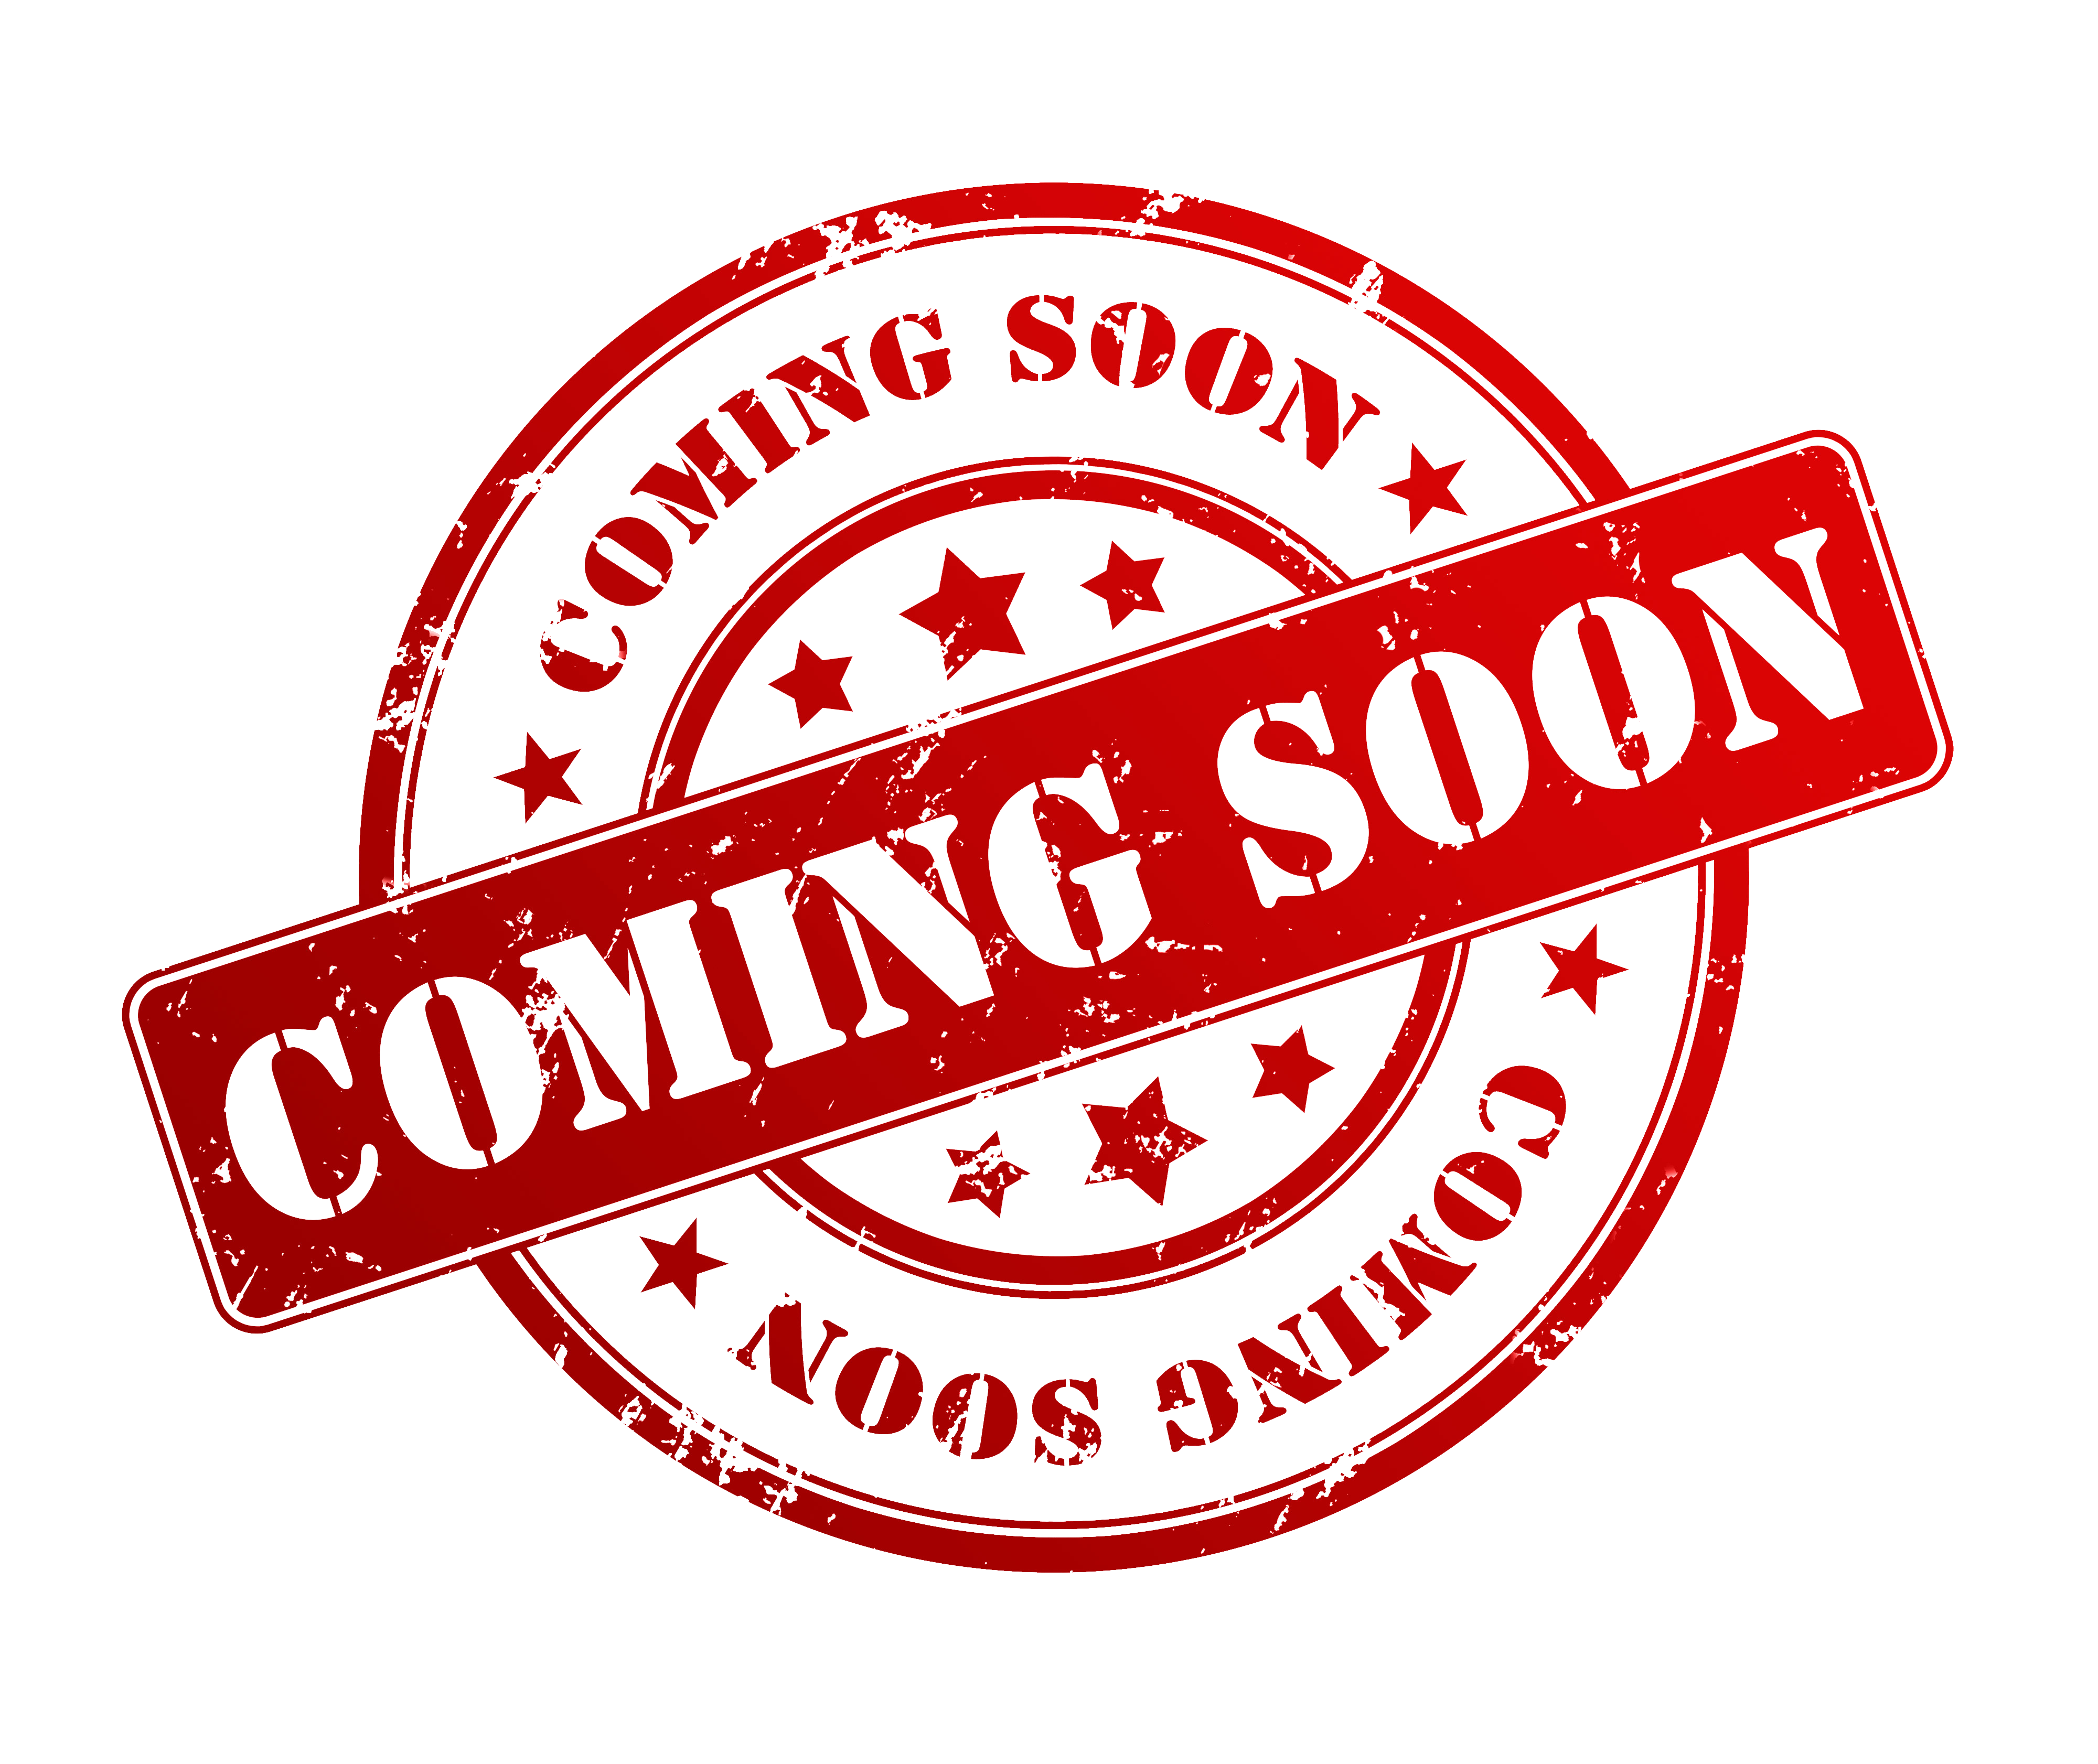 Coming soon png images. Transparent pluspng about betty